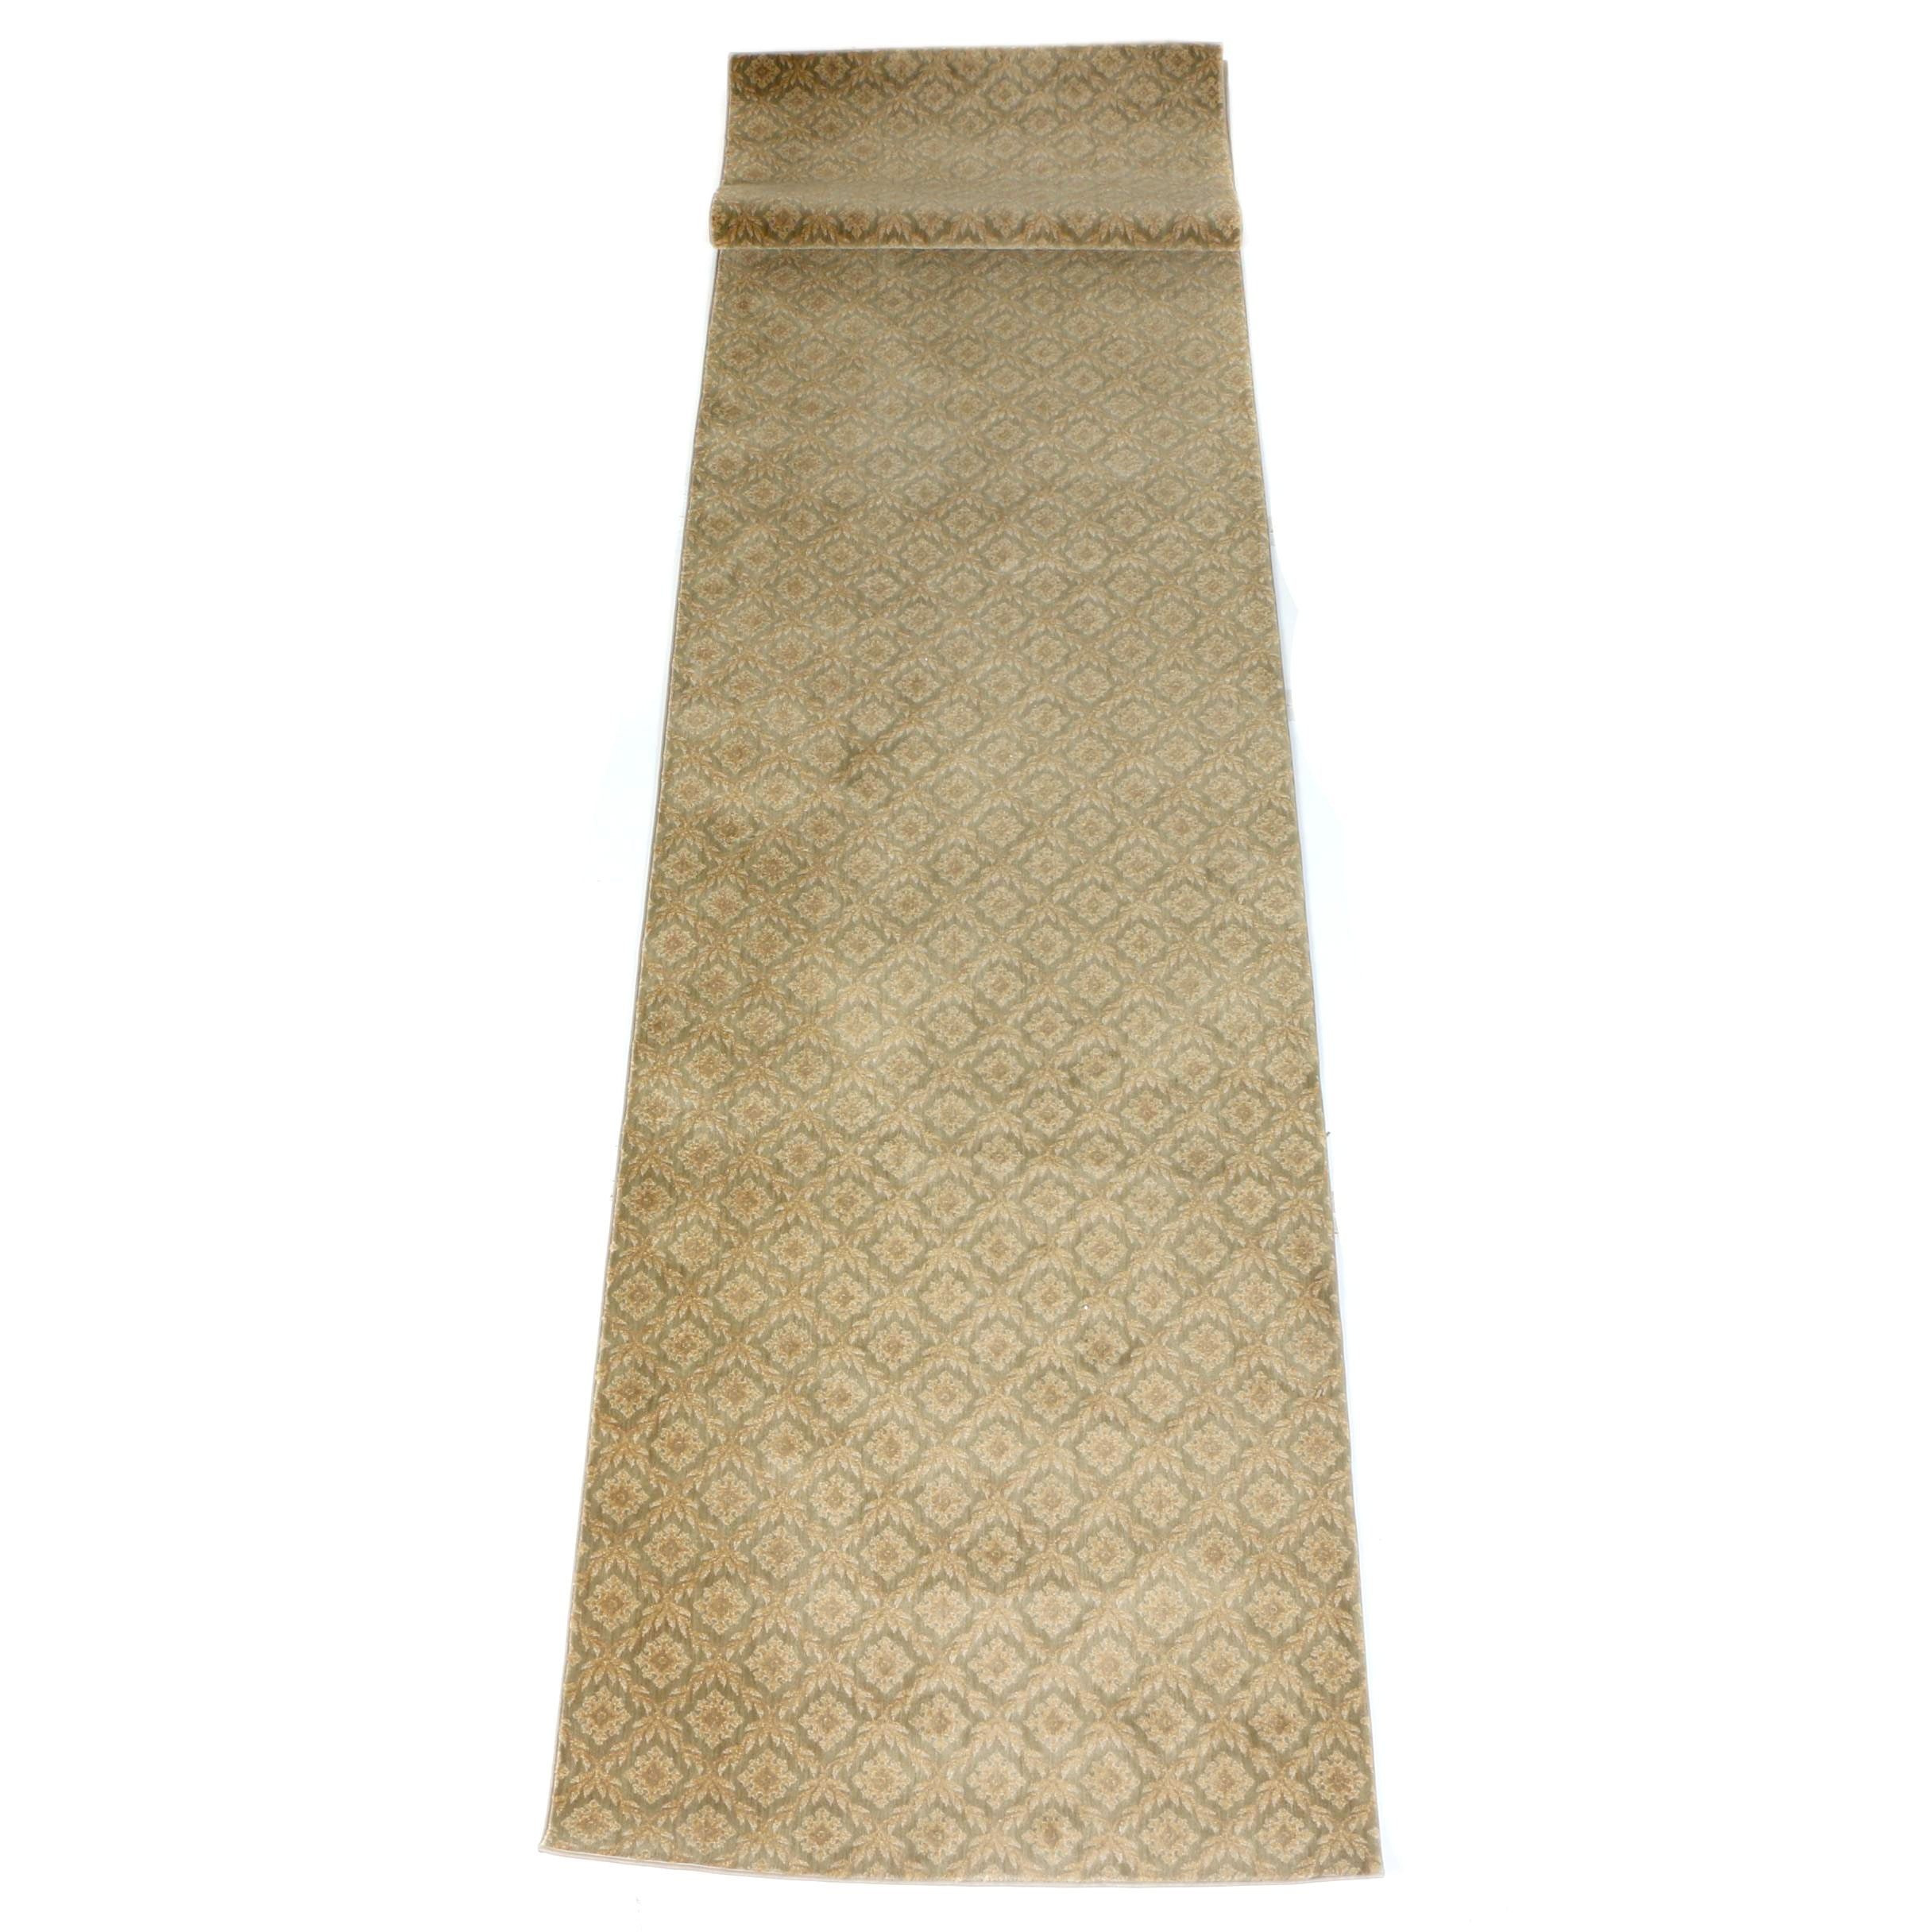 Power-Loomed Floral and Foliate Themed Palace Runner